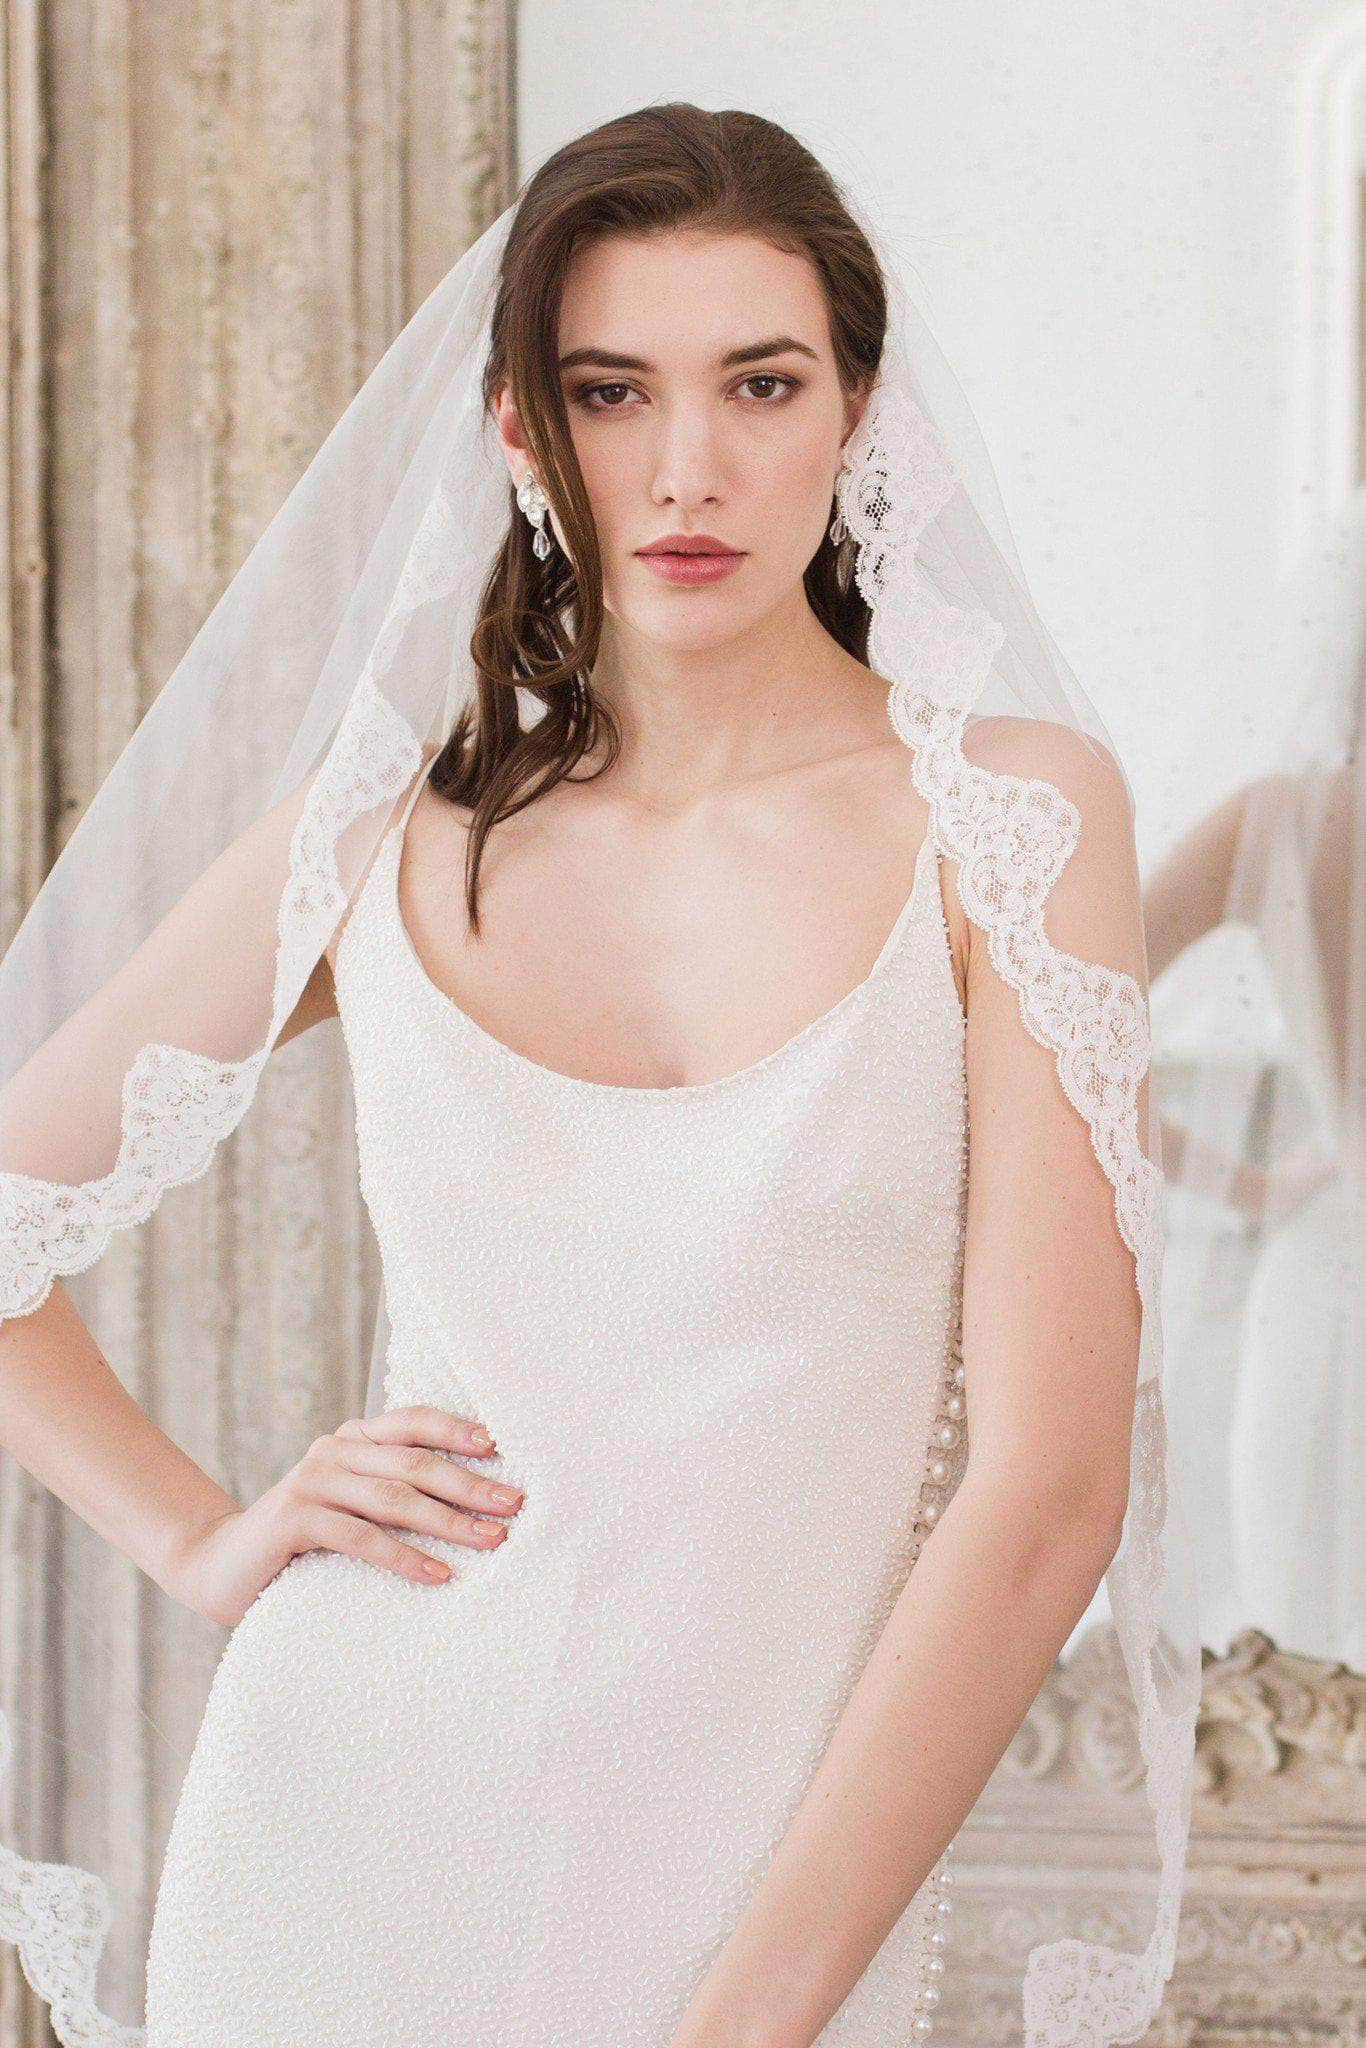 Fingertip lace edged wedding veil single tier